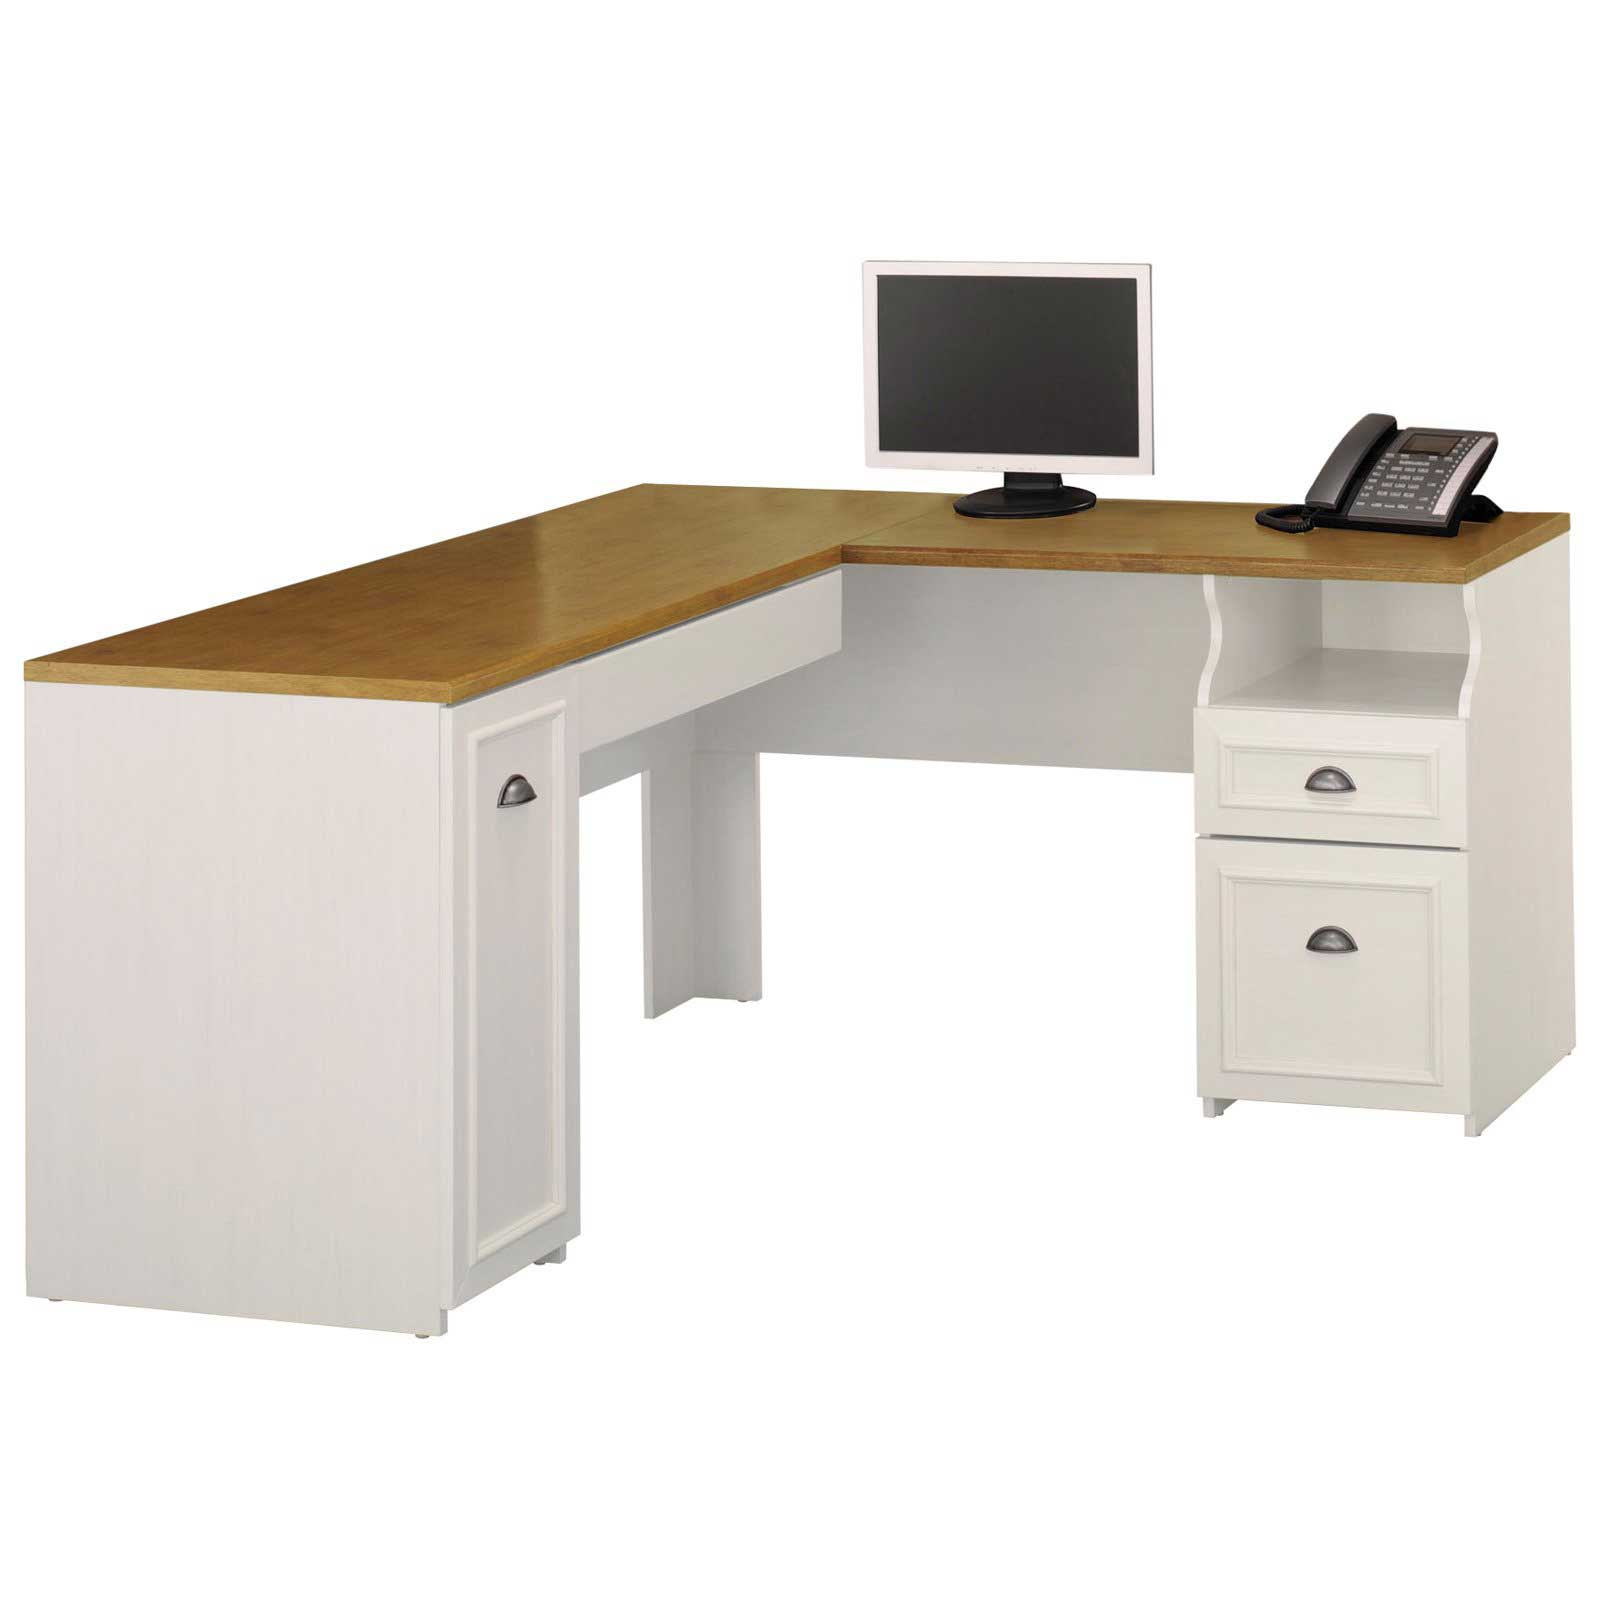 Office Furniture Desk Corner Computer Desk Furniture Office Furniture